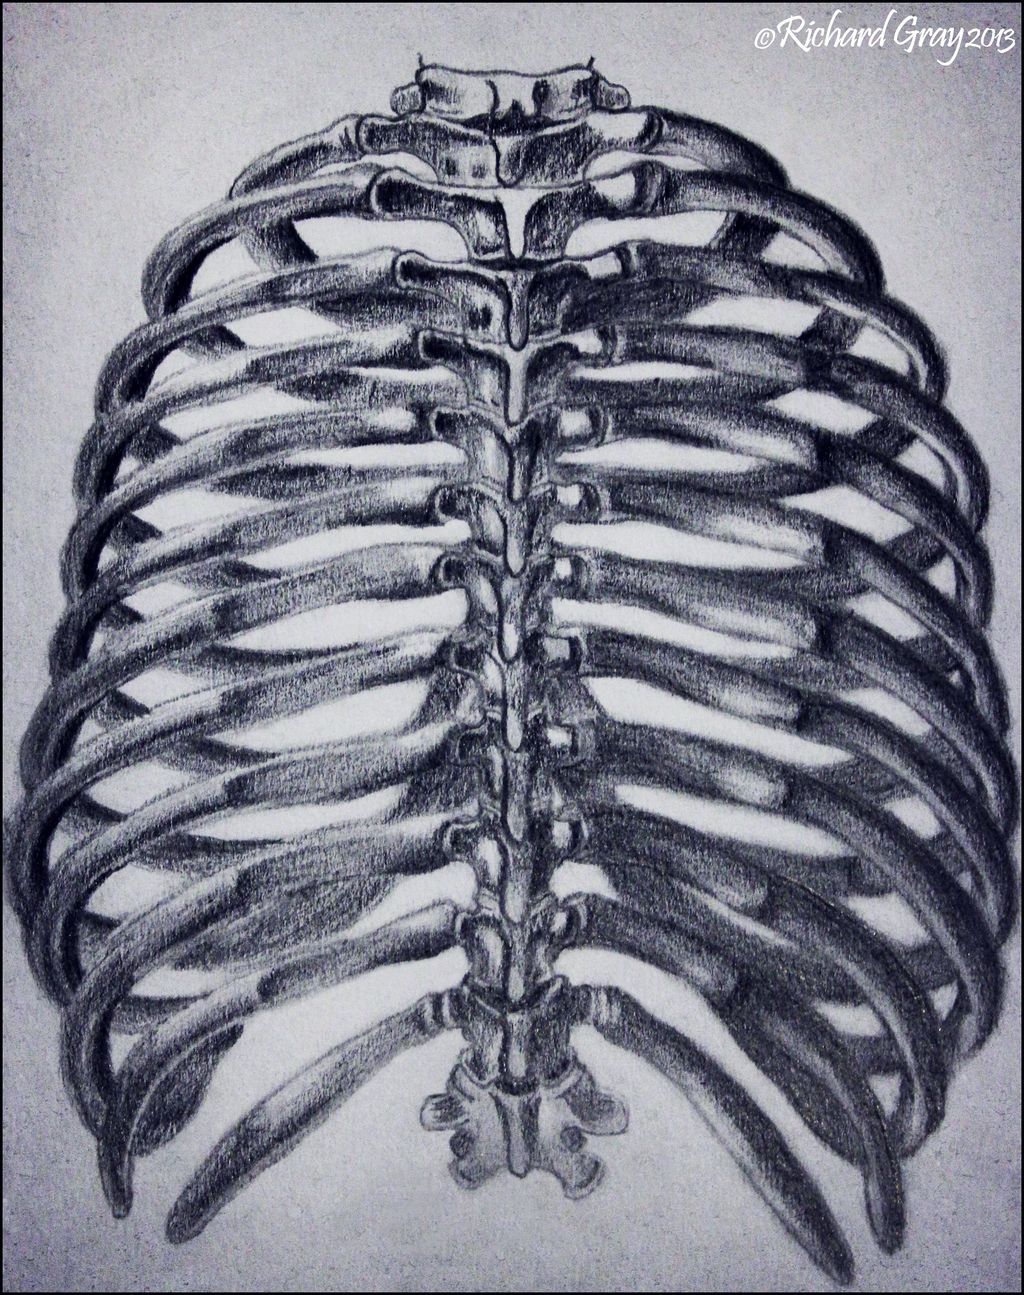 1024x1295 The Human Ribcage By Ricgraydesign